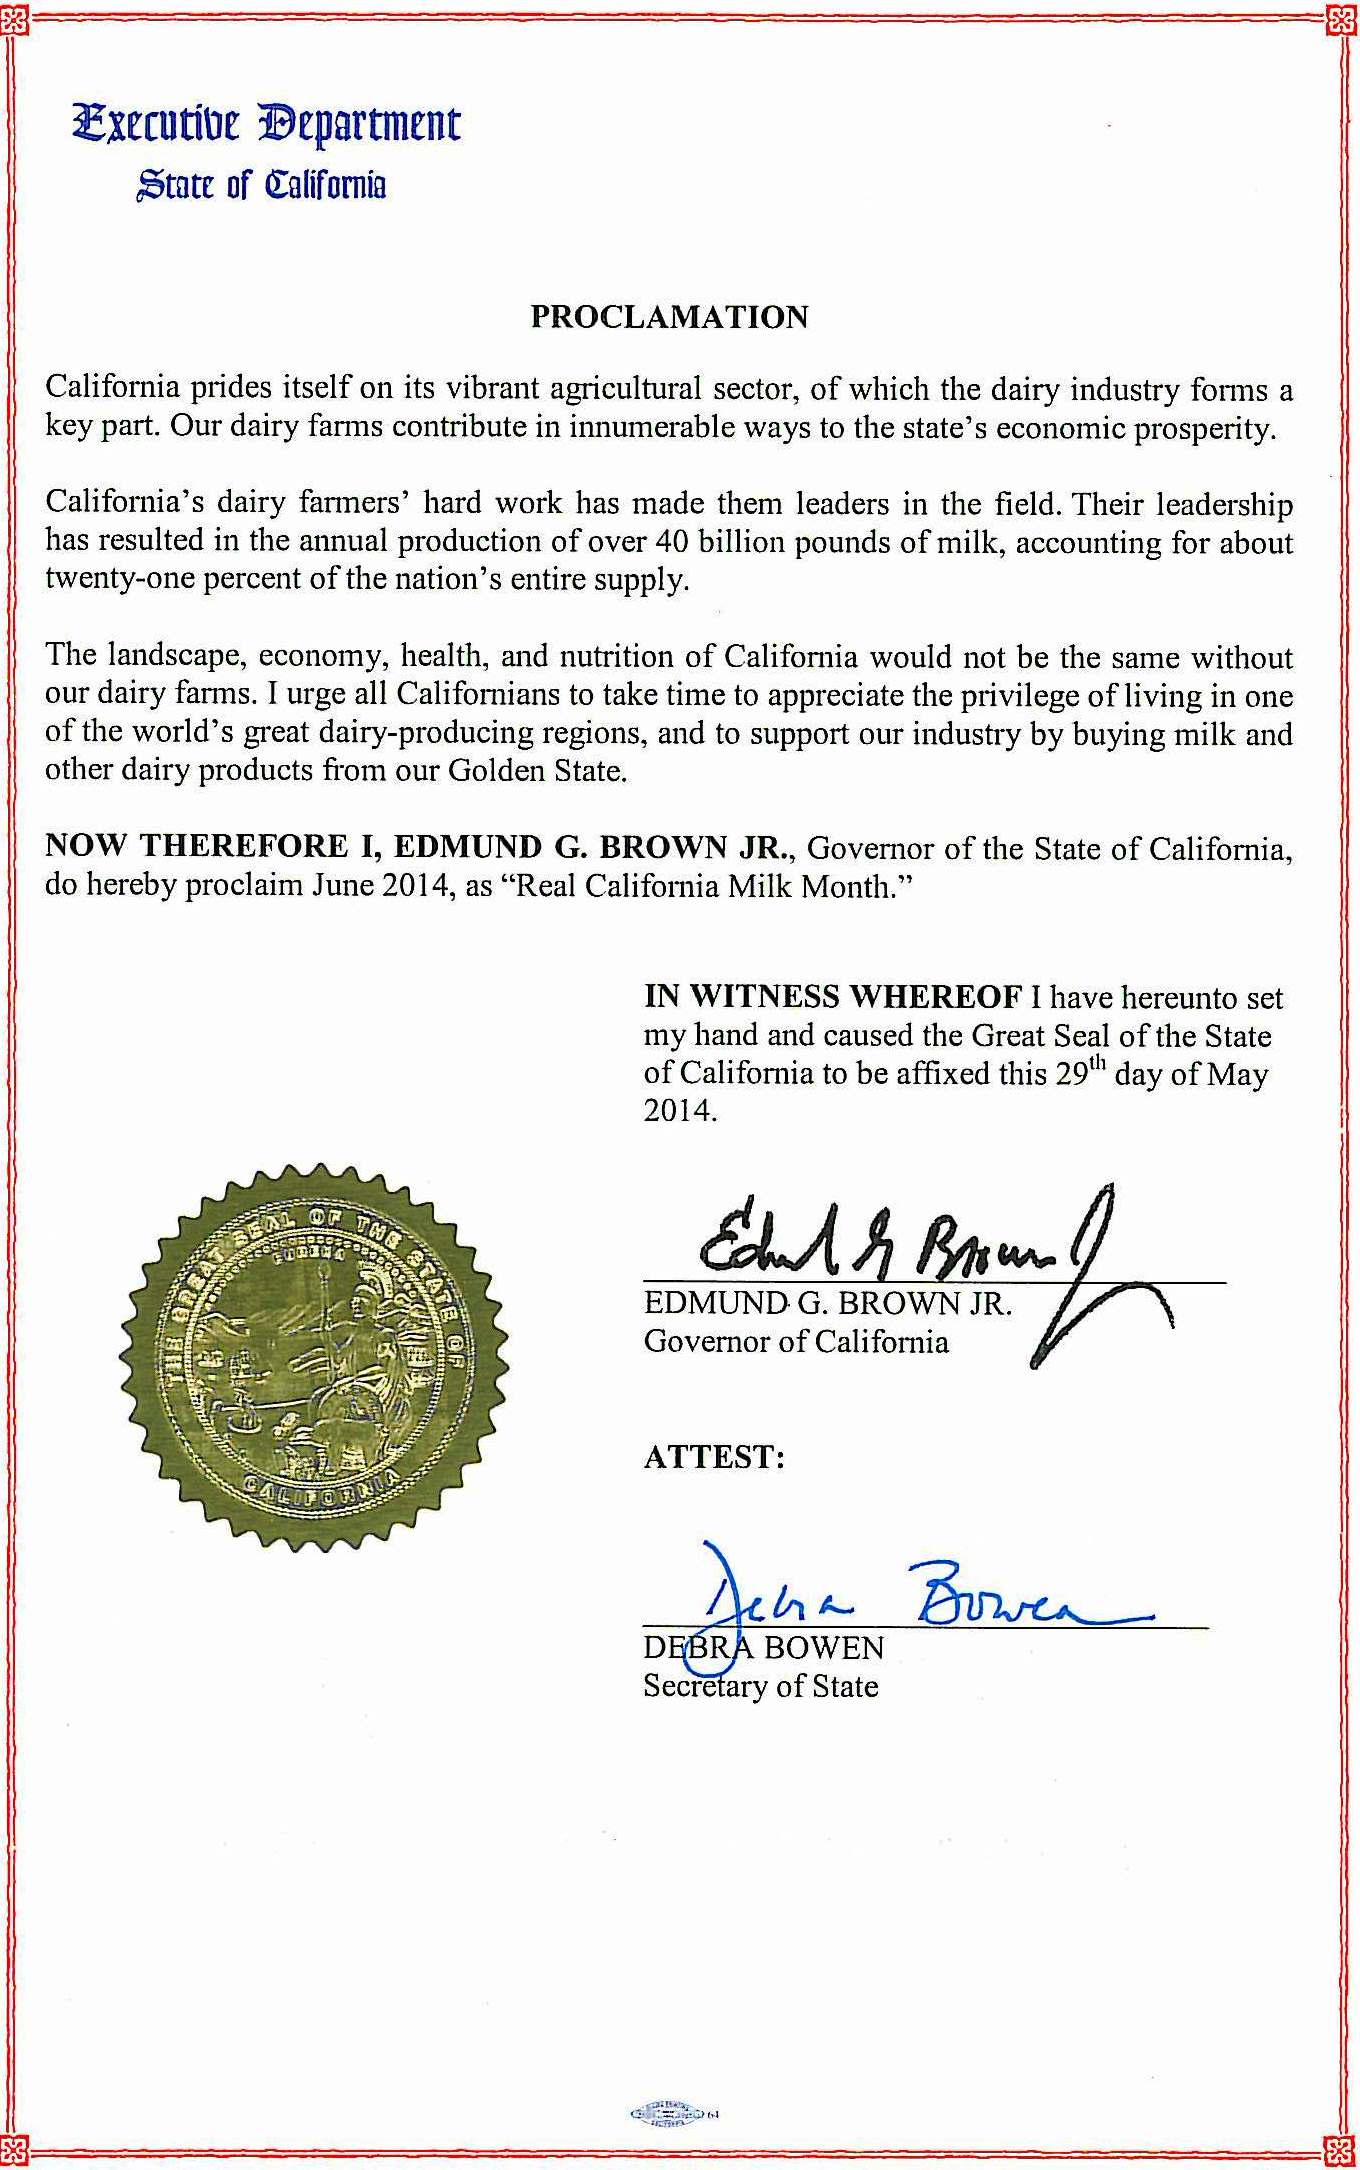 Governor Brown's Real California Month Proclamation